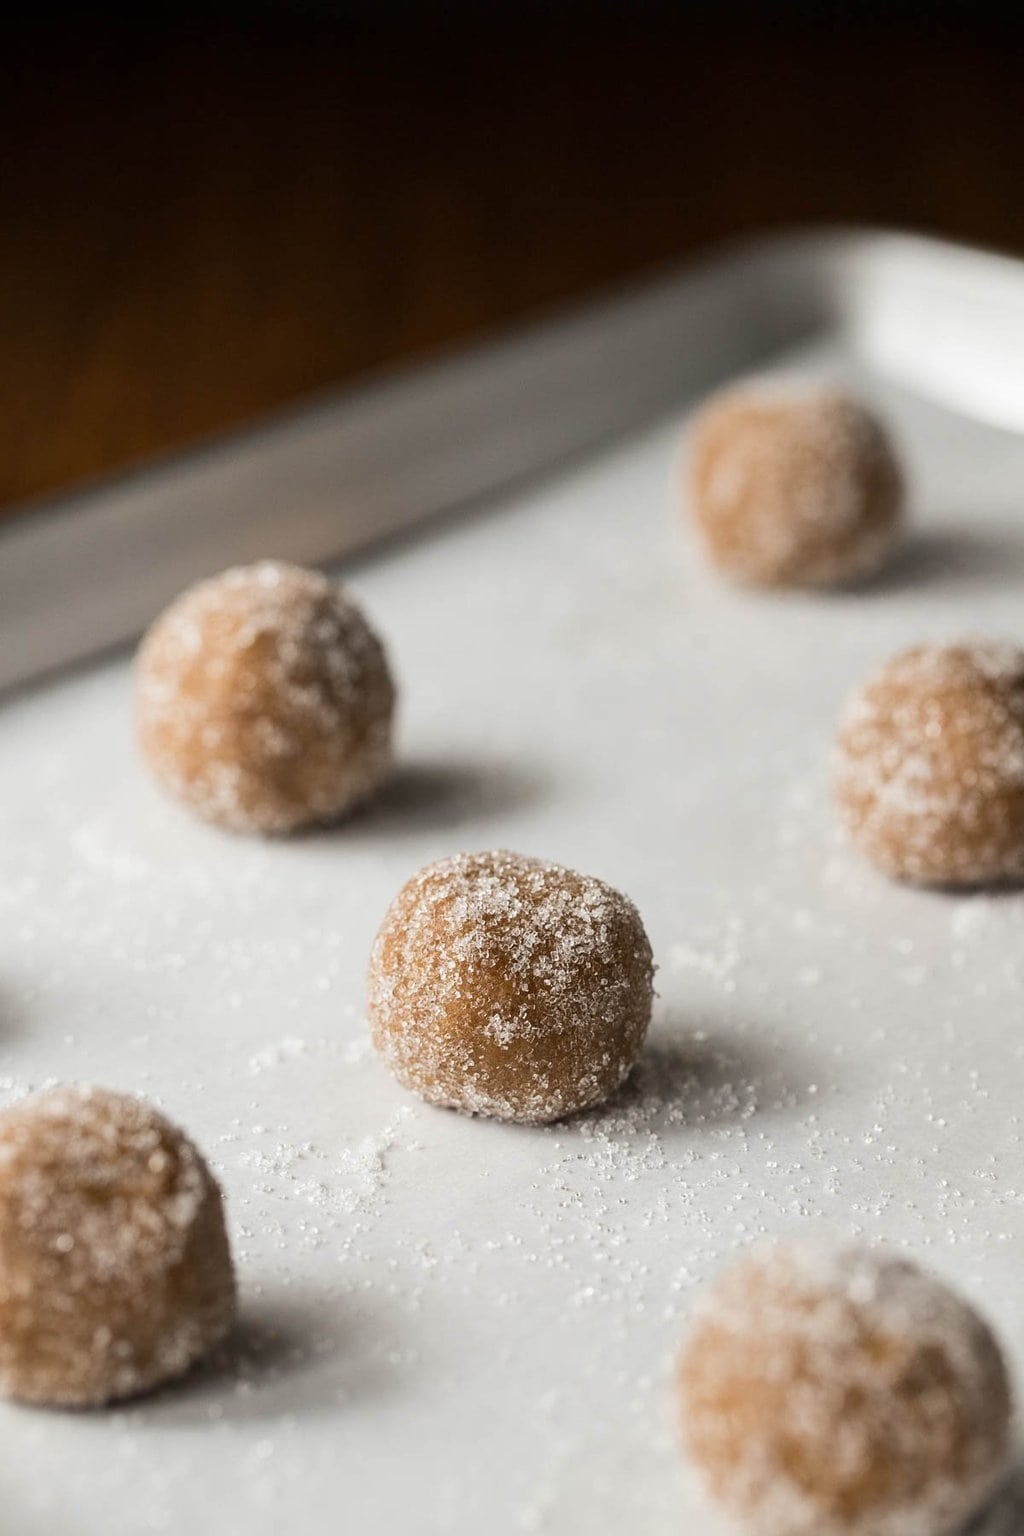 Photo of a baking pan full of Sea Salted Brown Sugar Cookie dough balls before baking.